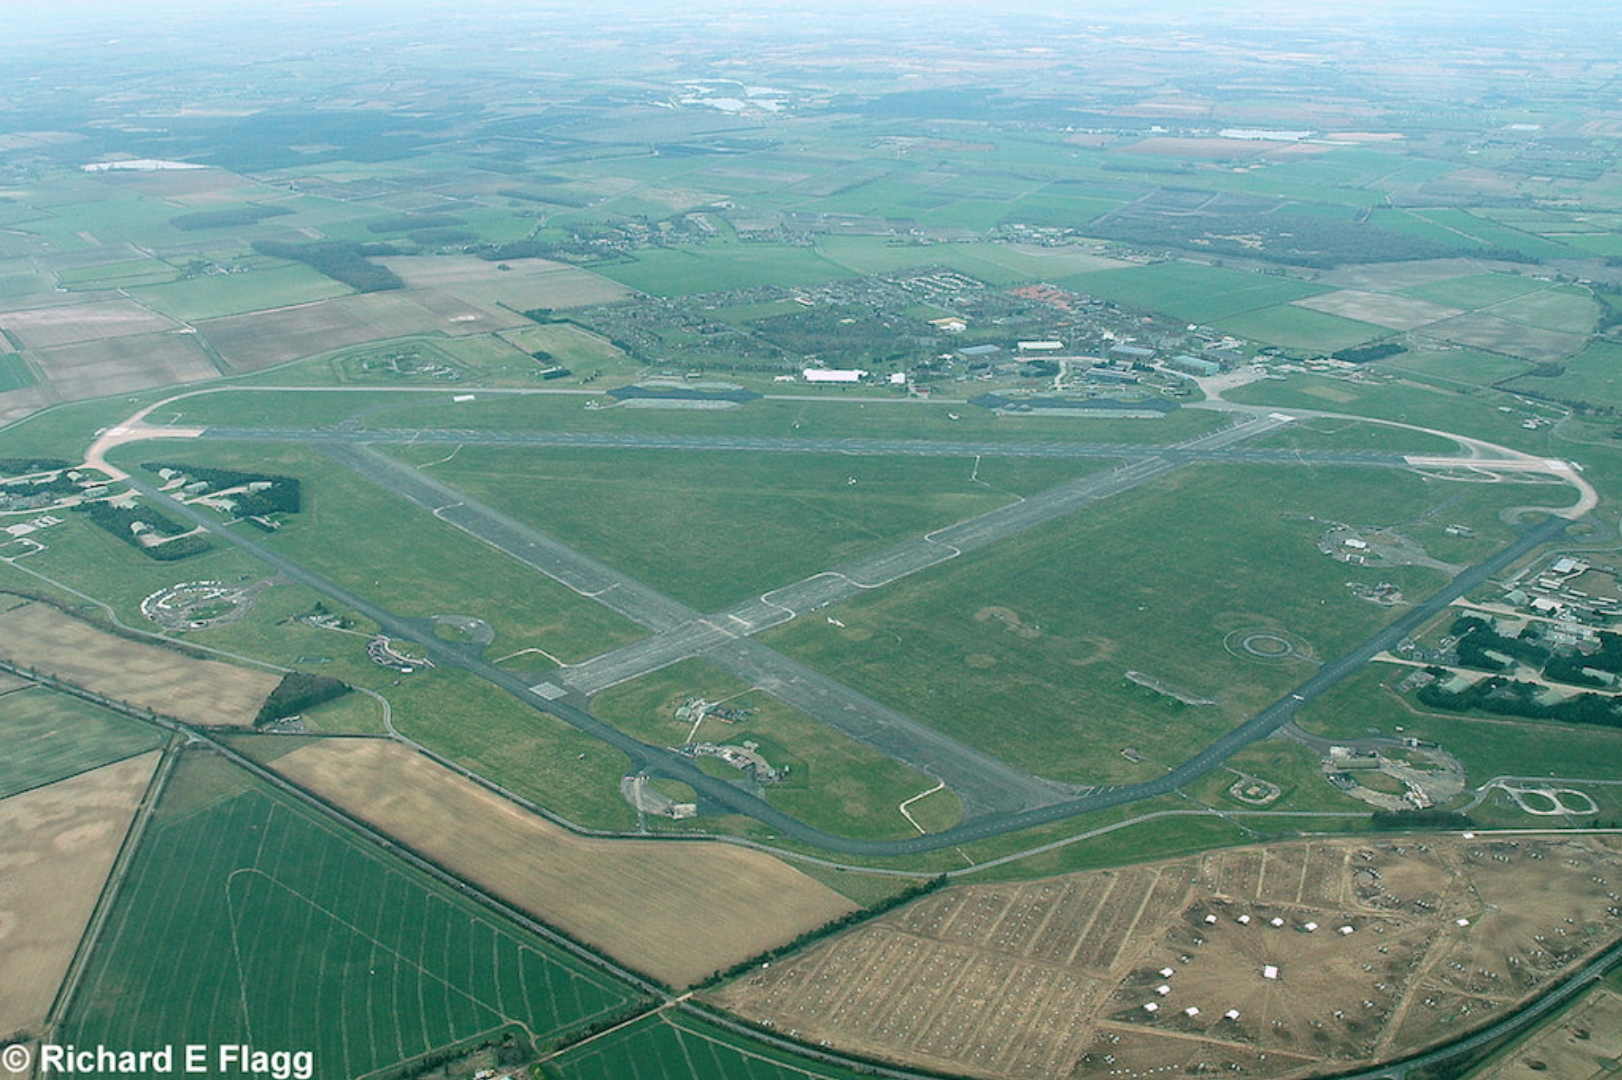 002Aerial view of Marham - 15 March 2009.png